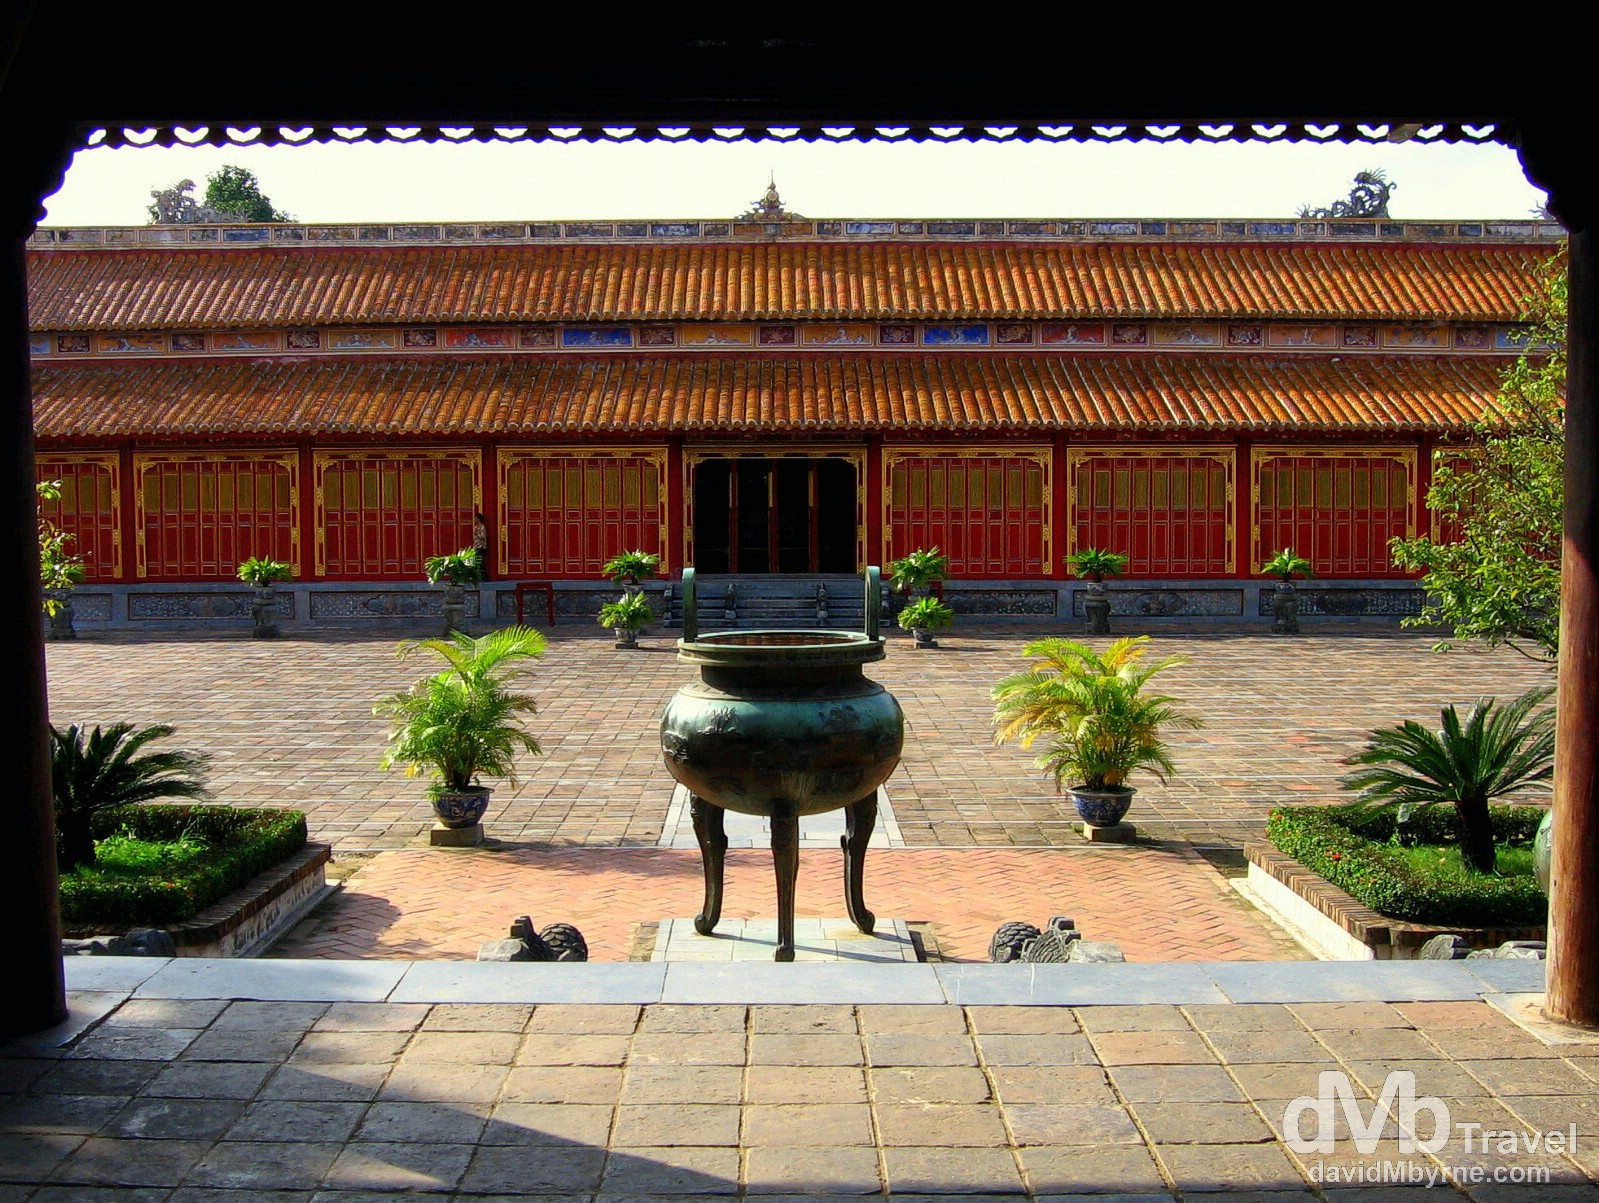 In the grounds of the ancient UNESCO-listed Citadel in Hue, Central Vietnam. September 7th, 2005.